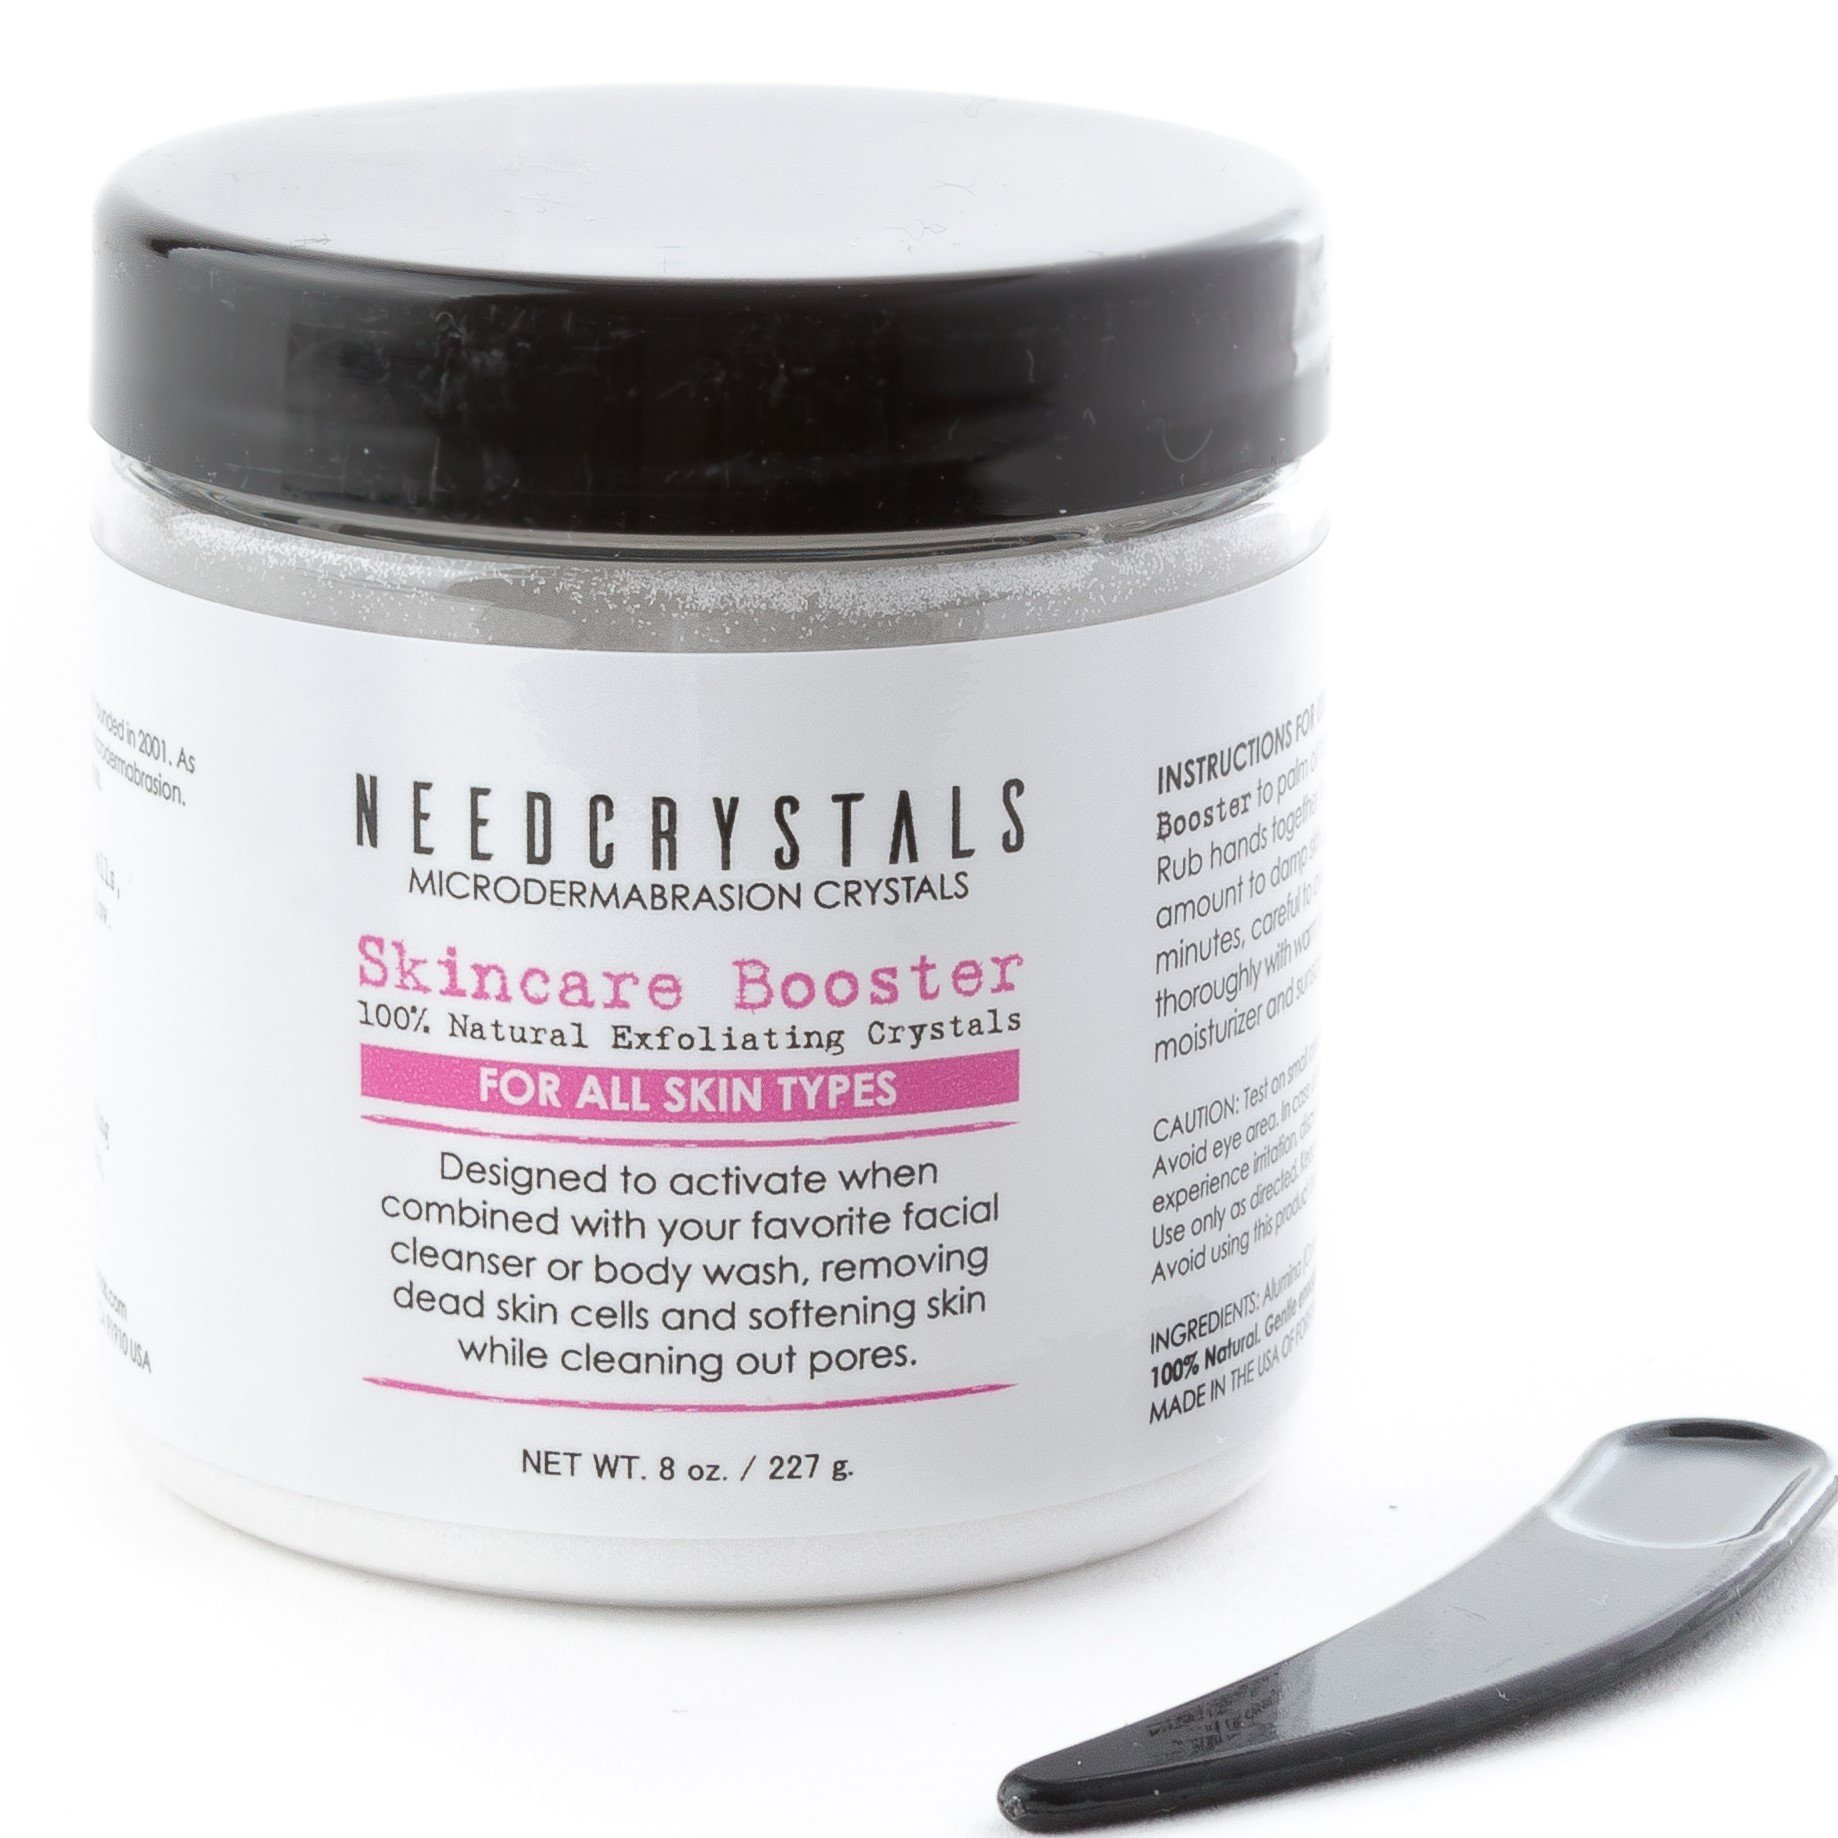 NeedCrystals Microdermabrasion Face Scrub. Natural Facial Exfoliator for Dull or Dry Skin Improves Acne Scars, Blackheads, Pore Size, Wrinkles, Blemishes & Skin Texture. 8 oz